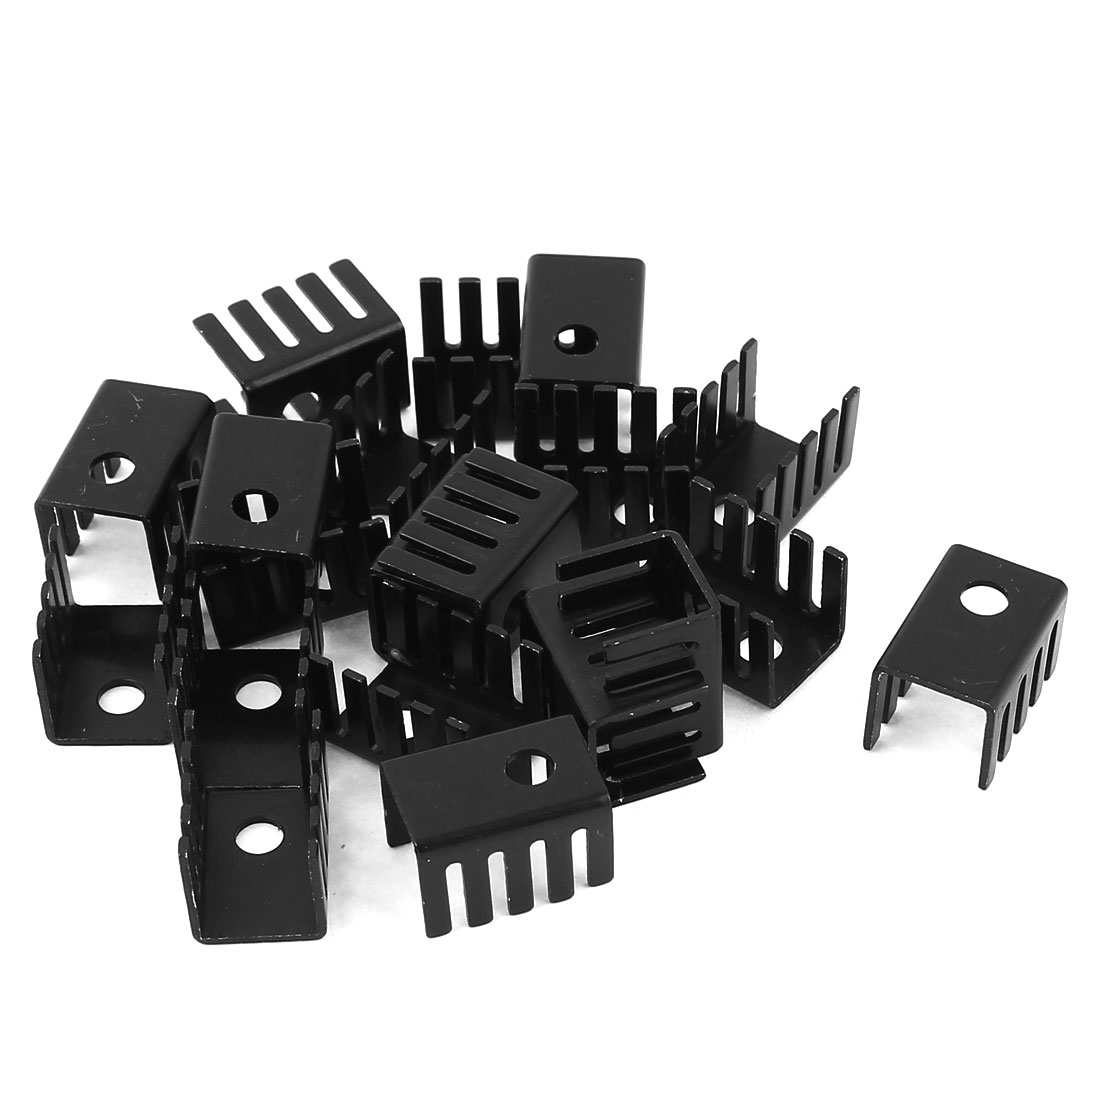 20 Pcs Aluminum Heat Sink Heatsink Radiator 19x13x13mm Black for Mosfet IC